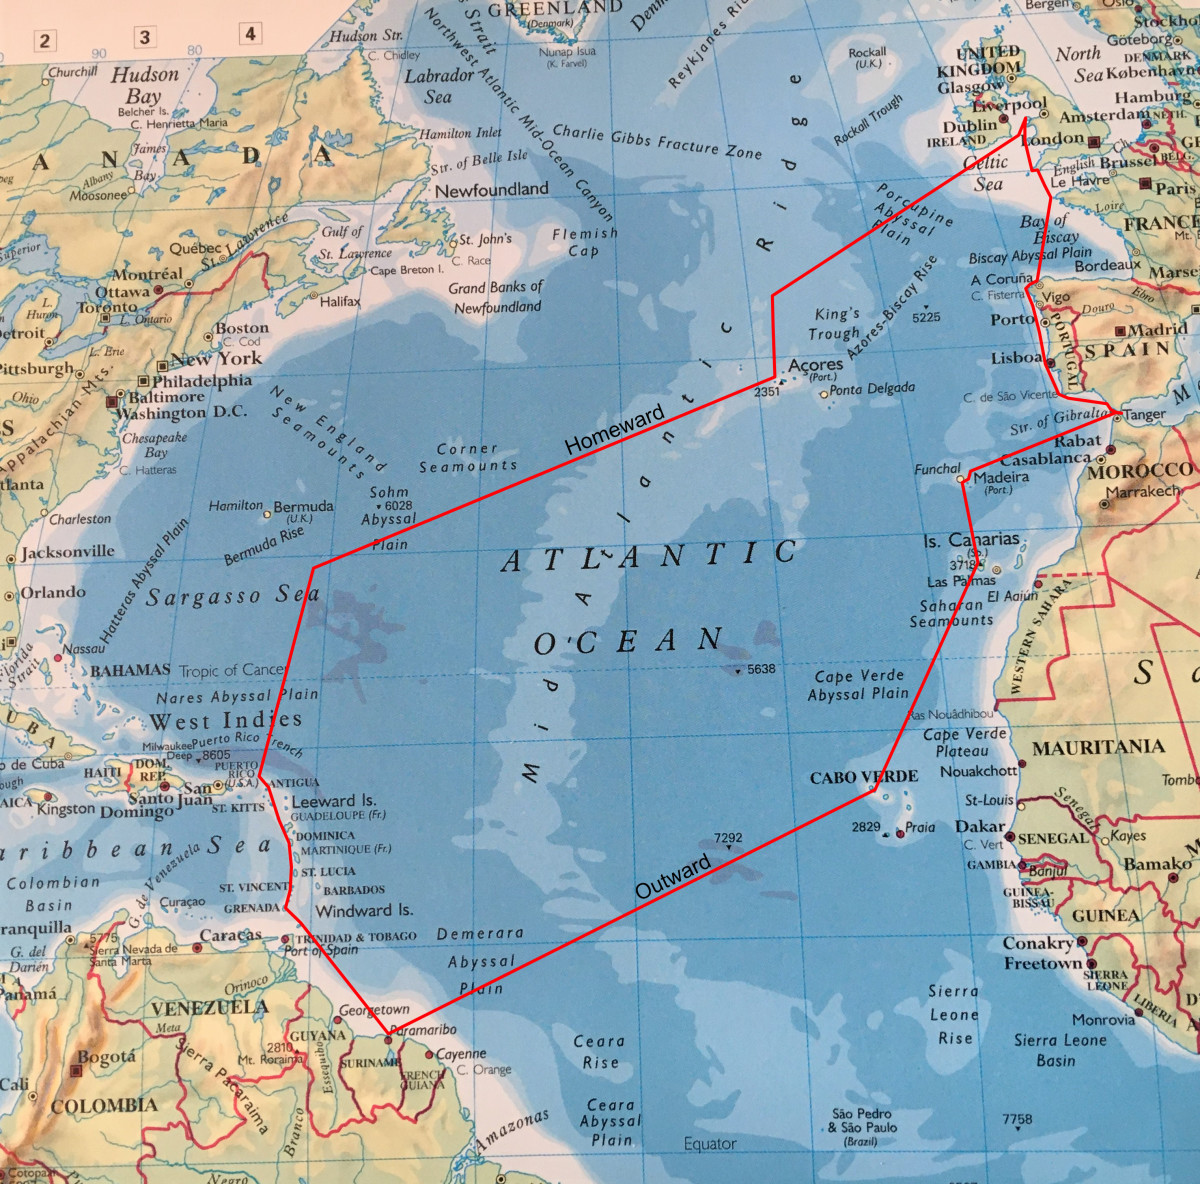 The Atlantic Voyage of Plancius 2018-2019